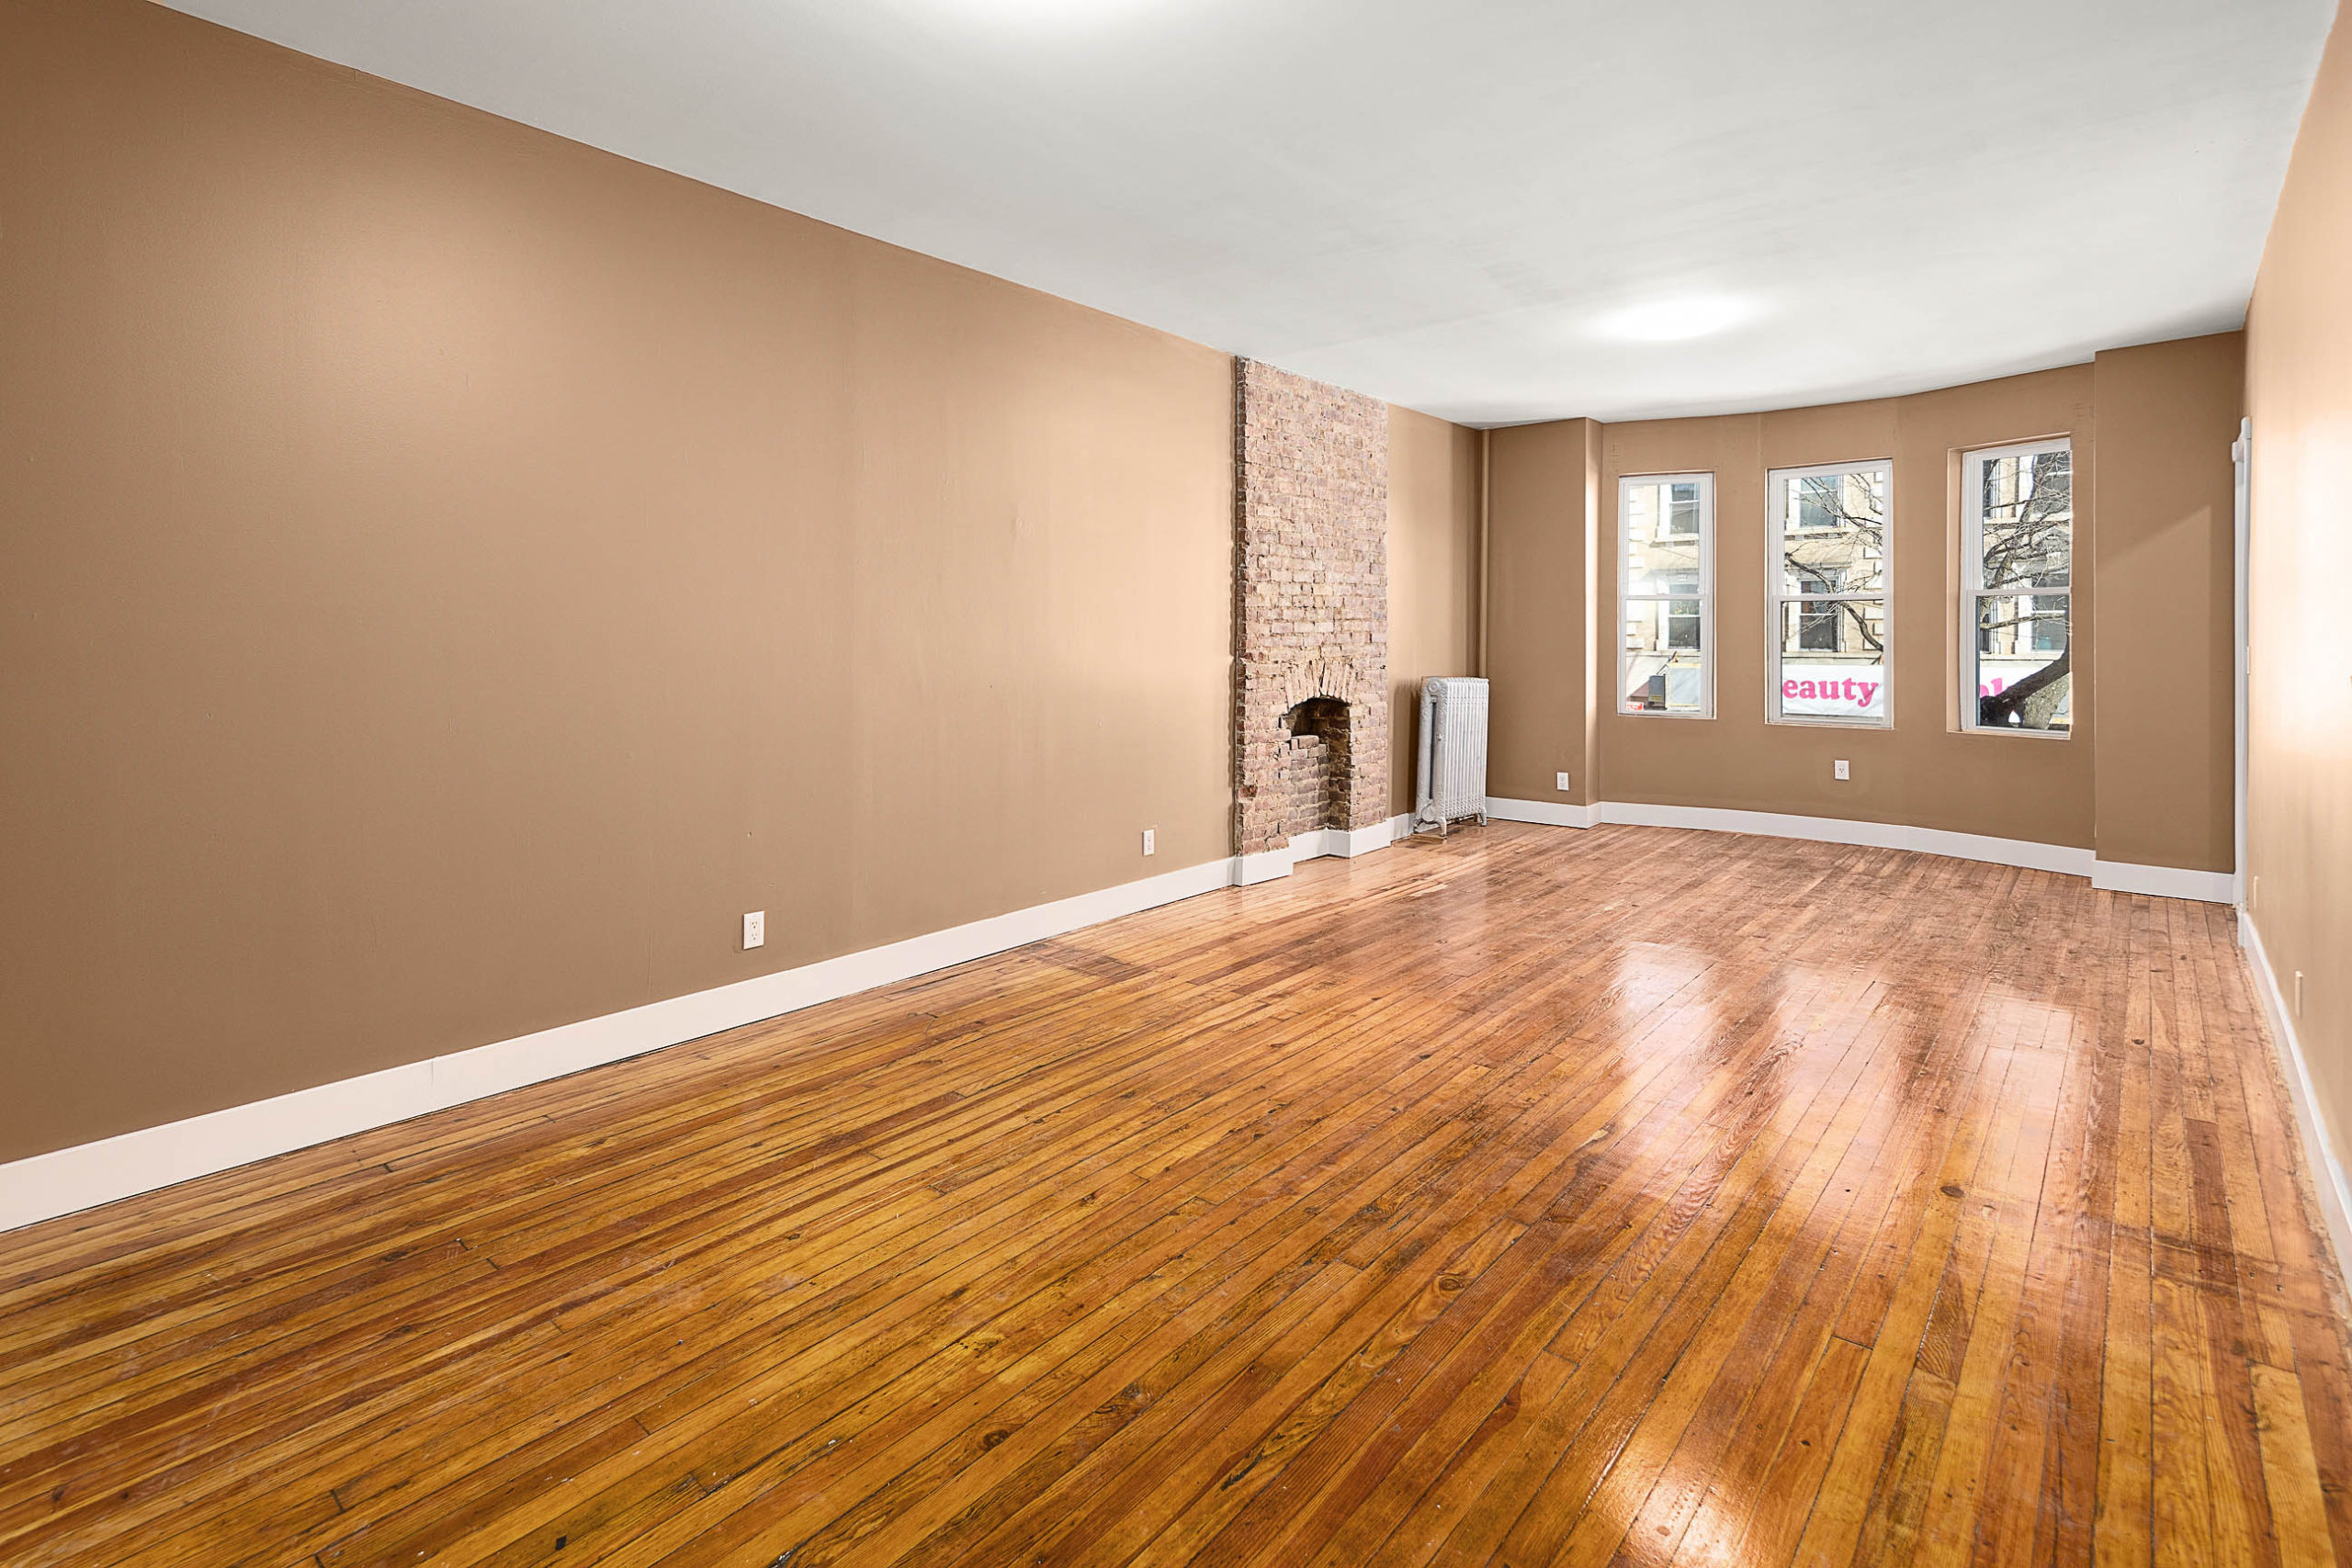 RENTED: 1126 Flatbush Ave, #2 - Ditmas Park